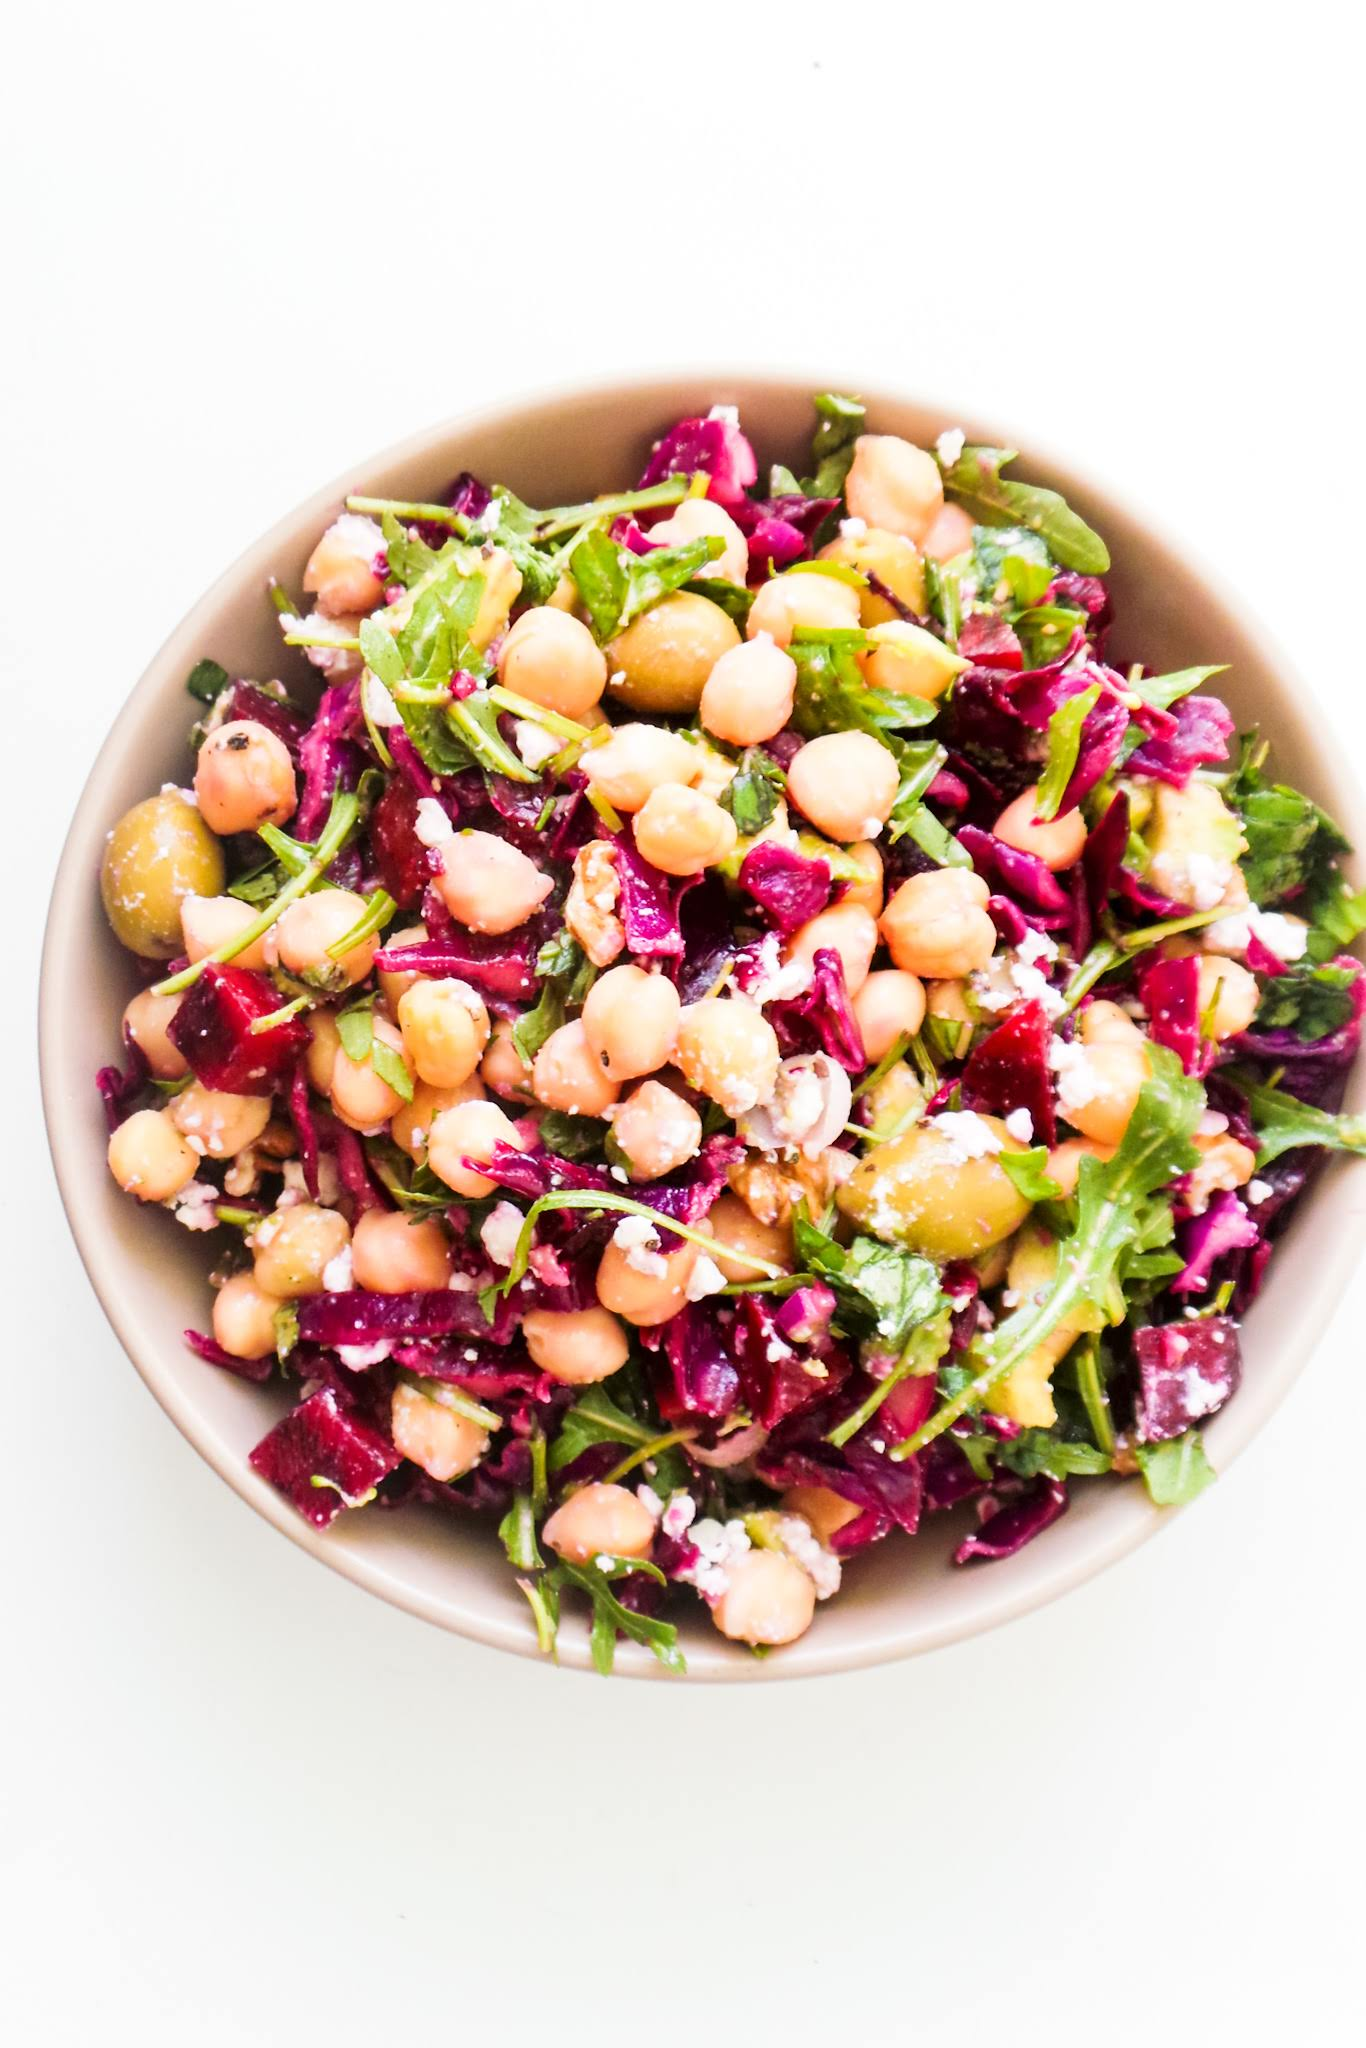 Easy Mediterranean Chickpea Salad recipe! This healthy Mediterranean diet recipe is perfect for lunch or dinner and makes a great clean eating side dish too! With cabbage, chickpeas, olives and beets this healthy salad is filled with antioxidants, protein and fibre and is also a great winter salad recipe! This easy salad recipe is vegetarian and gluten-free, but it's also easily made vegan by leaving out the feta cheese! You need around 15 minutes to make it.